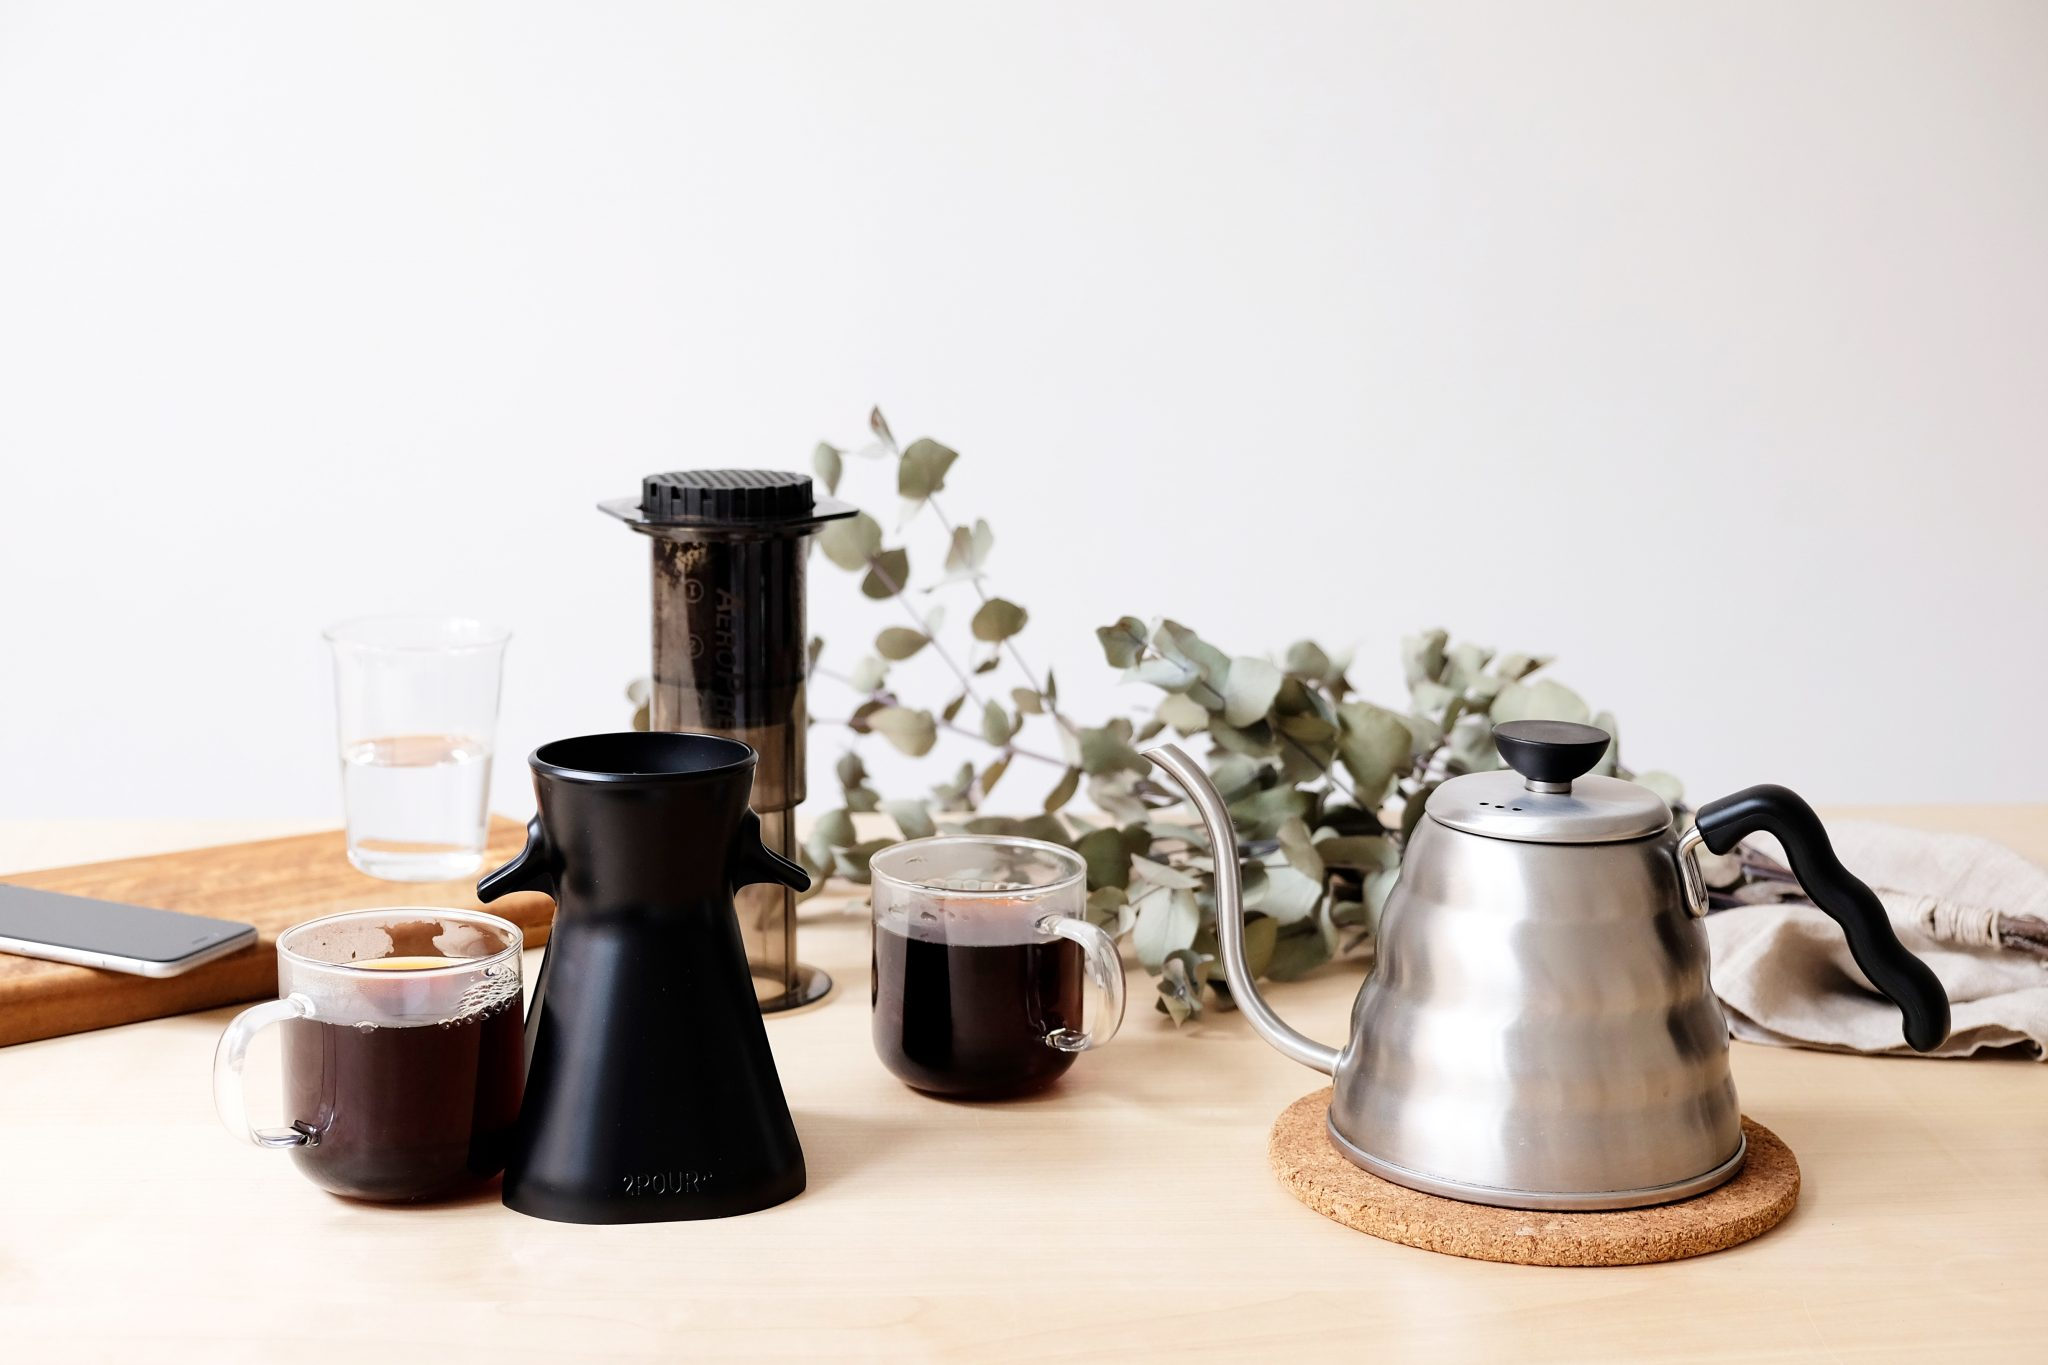 2Pour brewing device with AeroPress and cups of coffee.